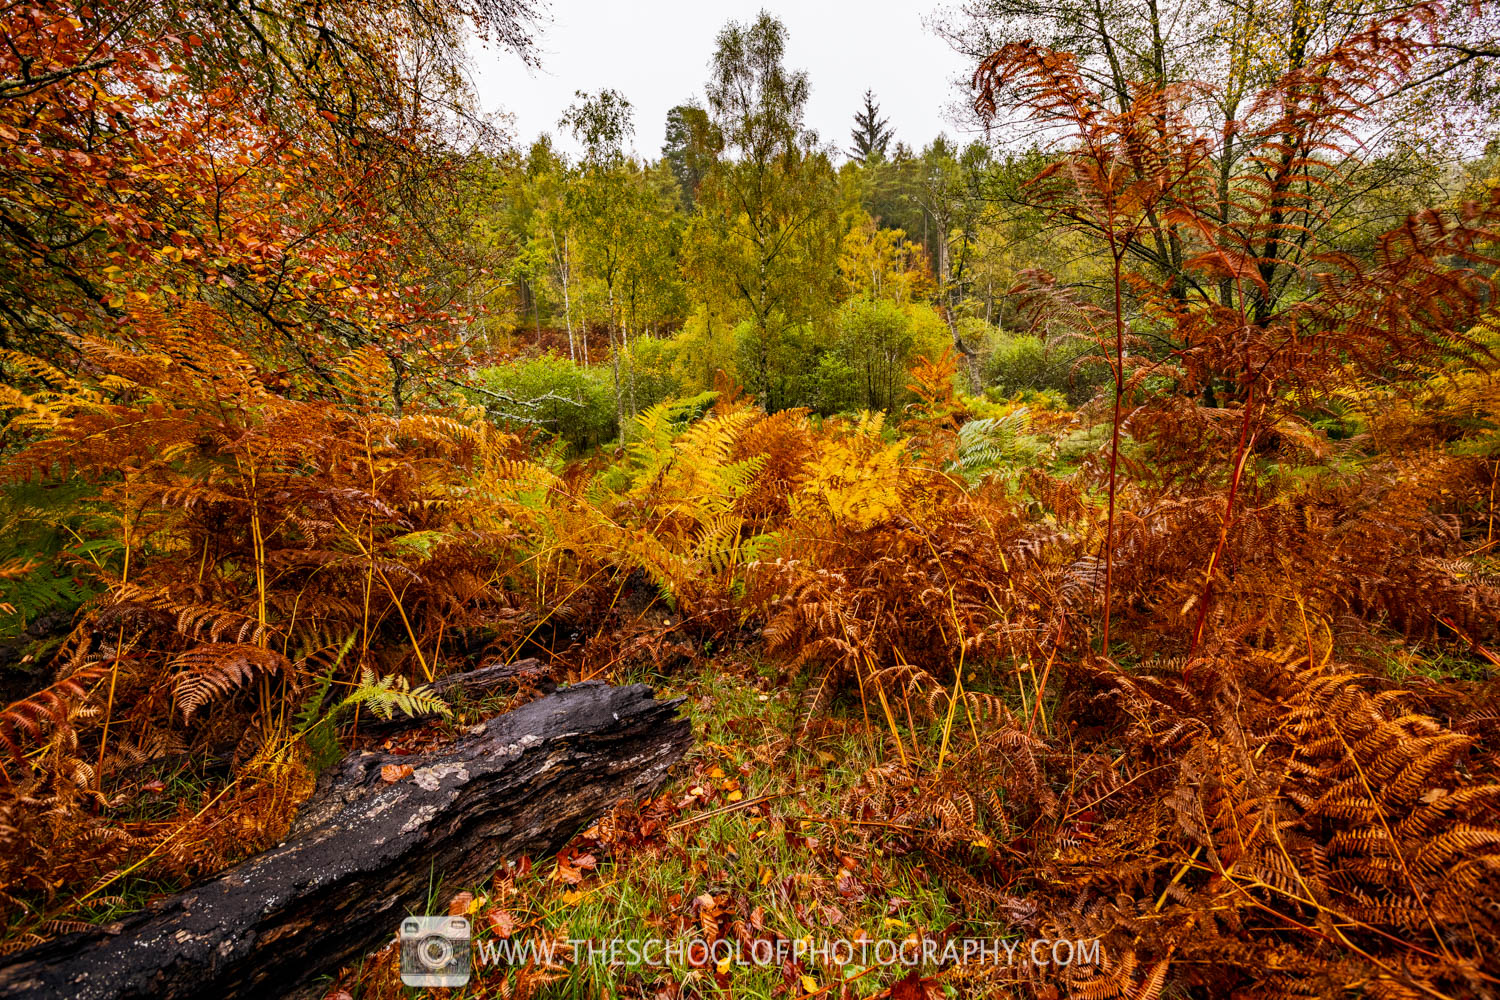 Autumn photography of the landscape